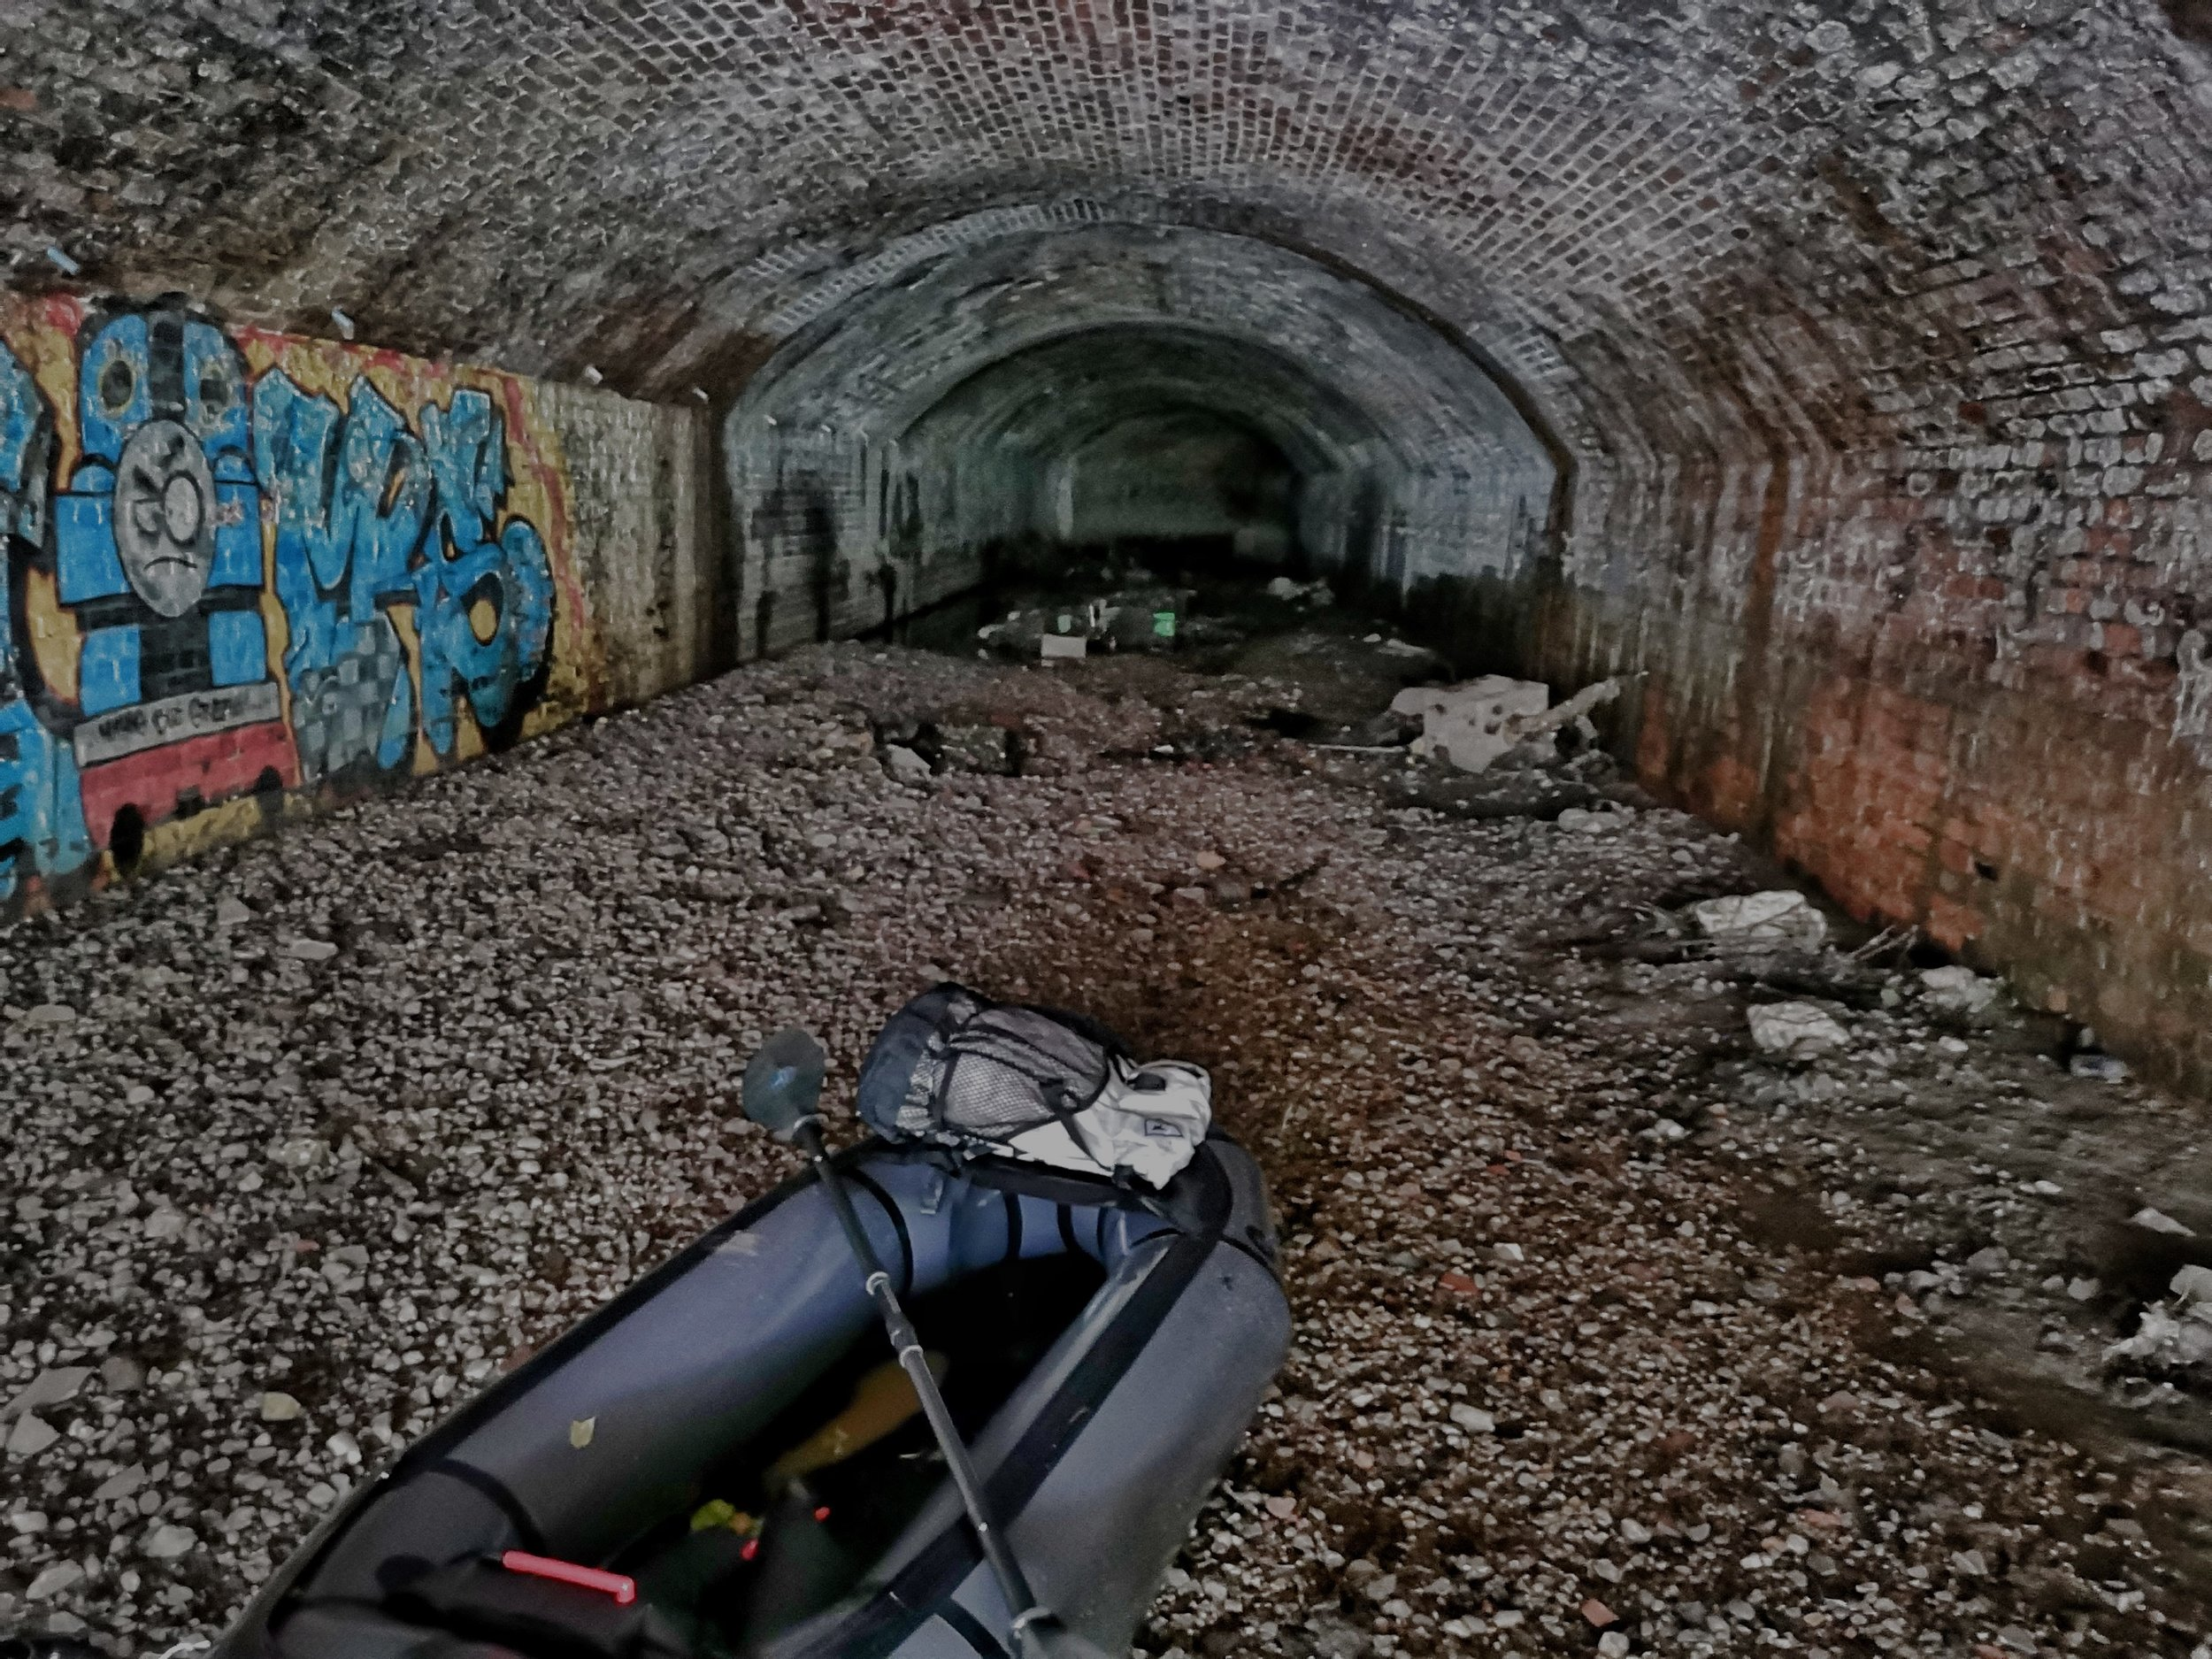 The tunnel on the right was partially dry so I opted to walk it rather than getting swept through the black hole to the left. This meant carrying my packraft as I waded through mud and discarded rubbish for approximately 300m into the black stinking darkness.